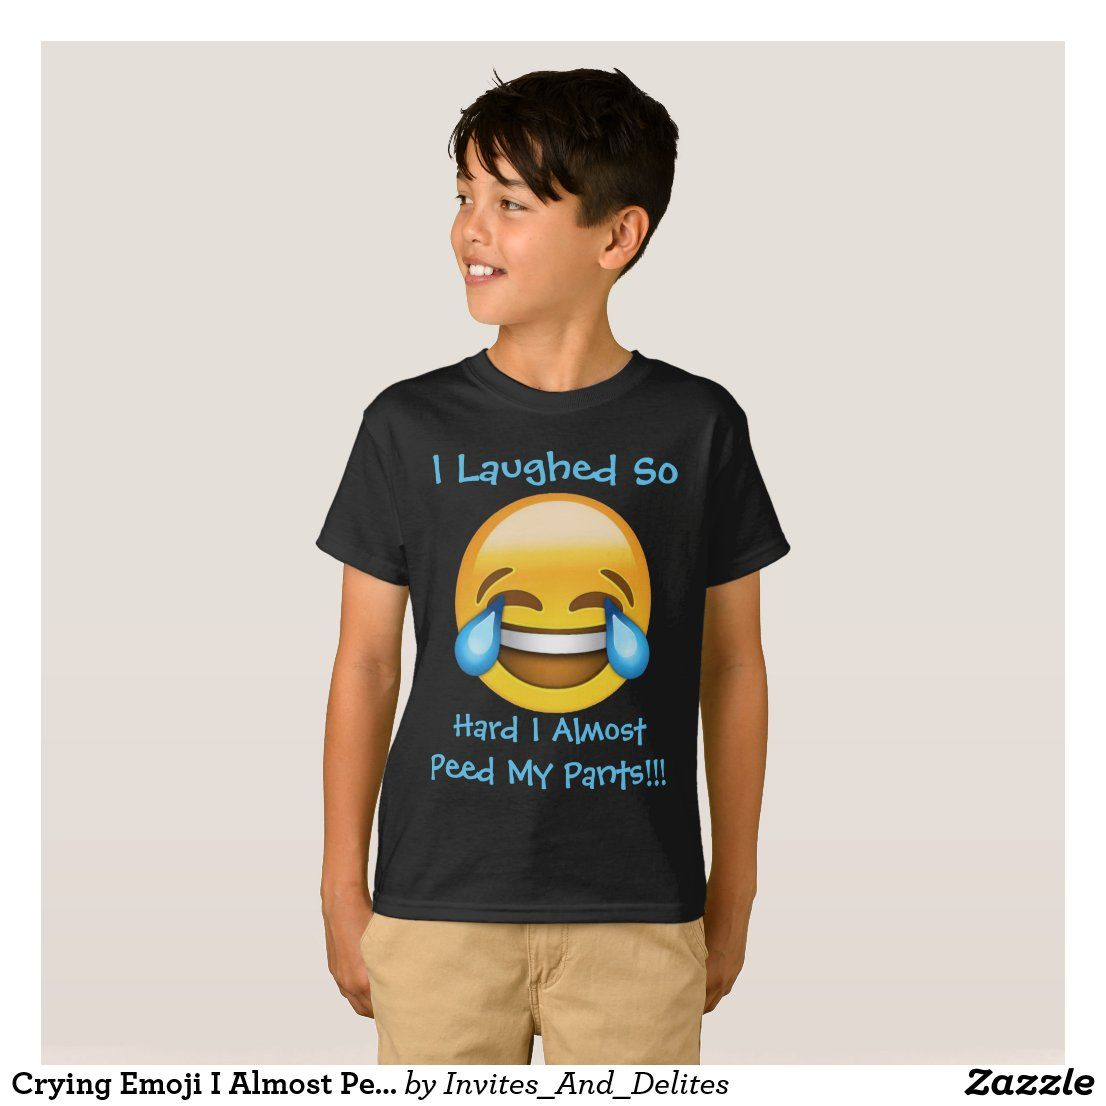 Crying Emoji I Almost Peed My Pants Boys T Shirt Zazzle Com In 2020 Boys T Shirts Stormtrooper T Shirt T Shirt